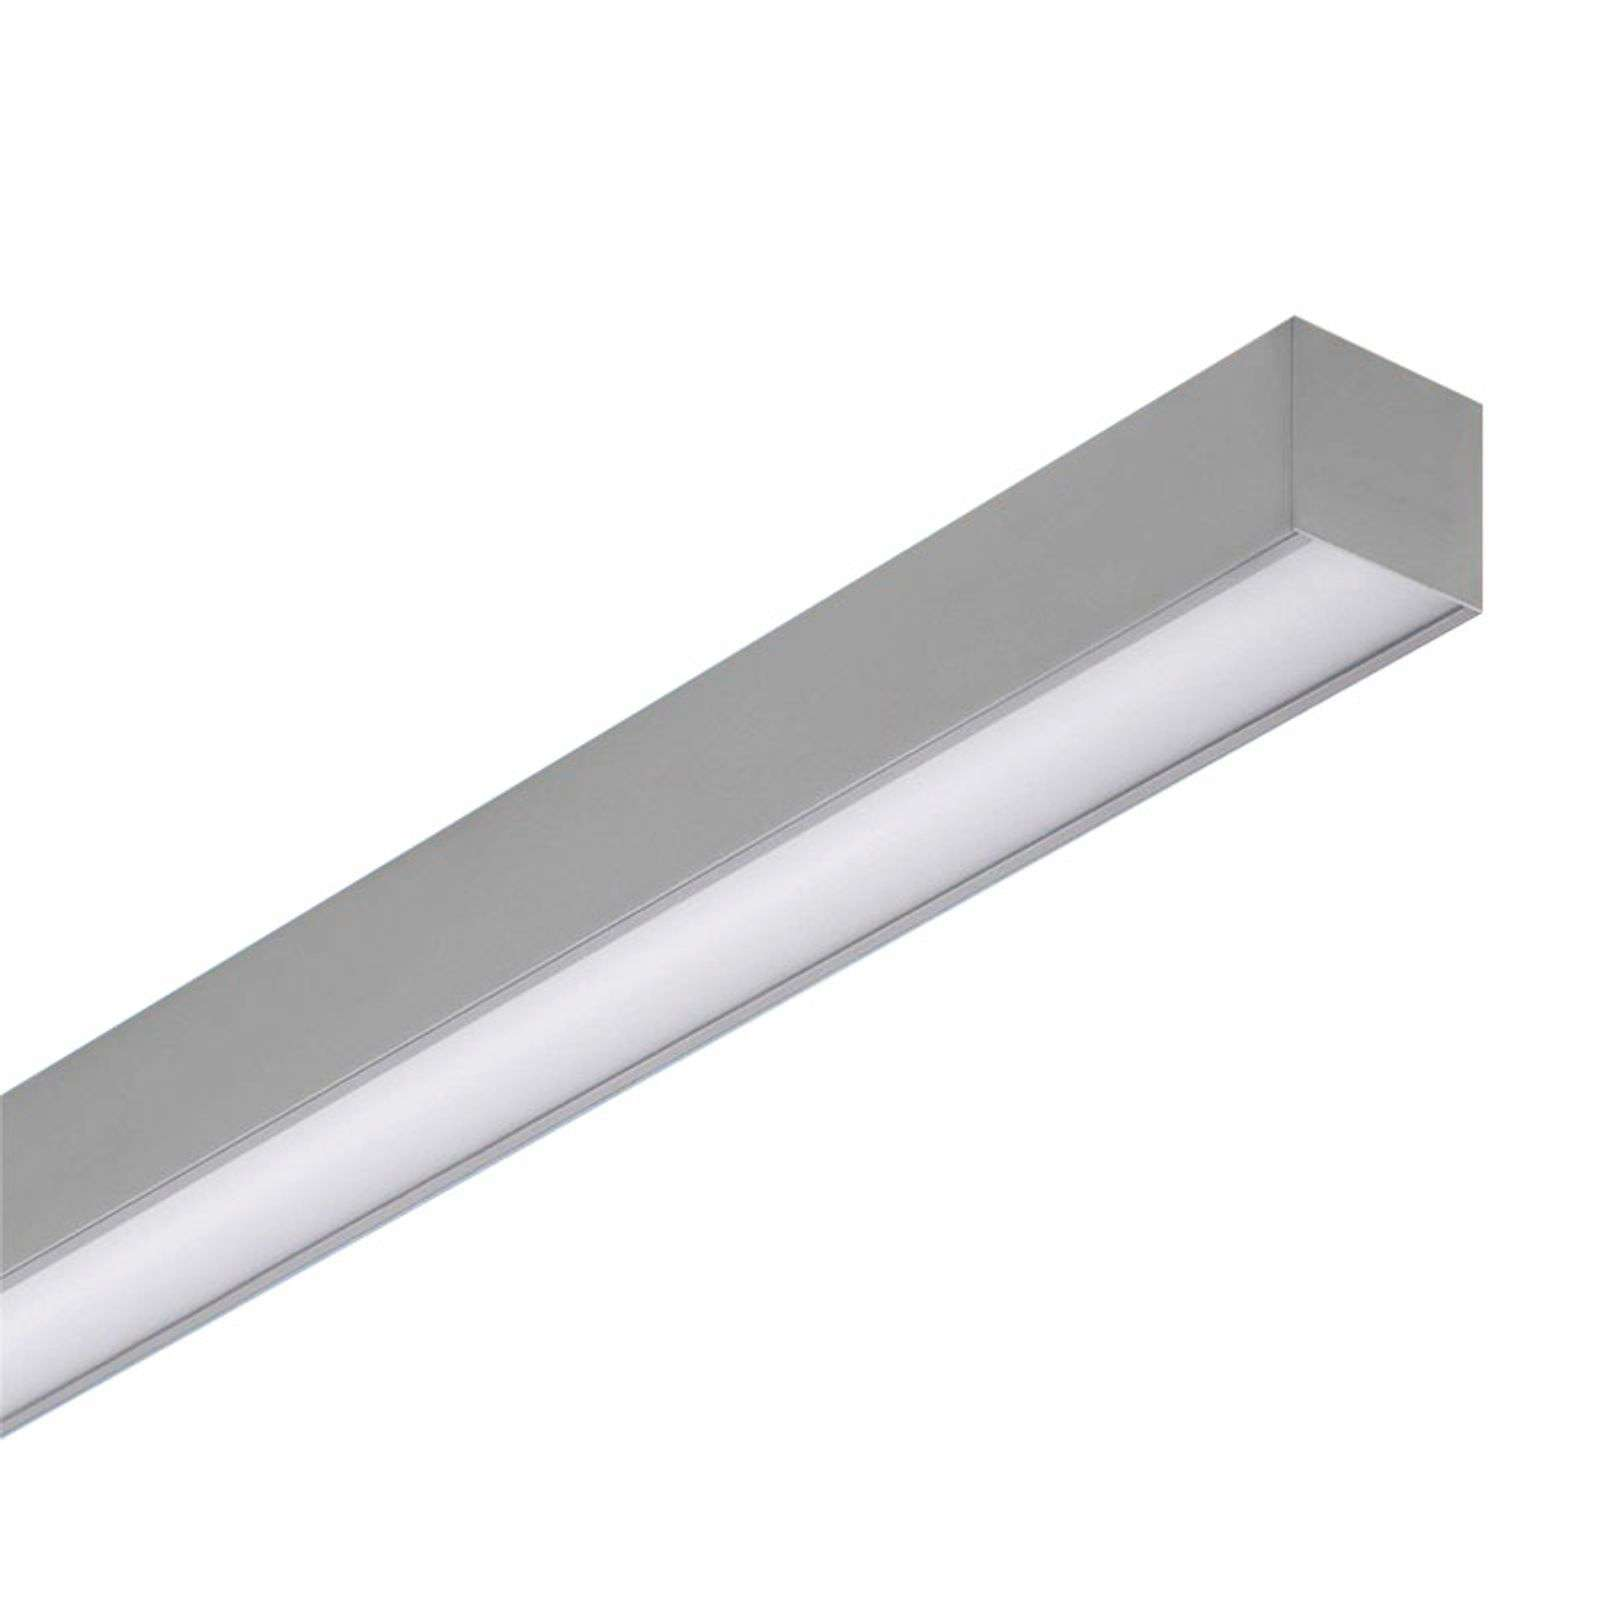 Applique LED LKPW075 efficace, 4 000K